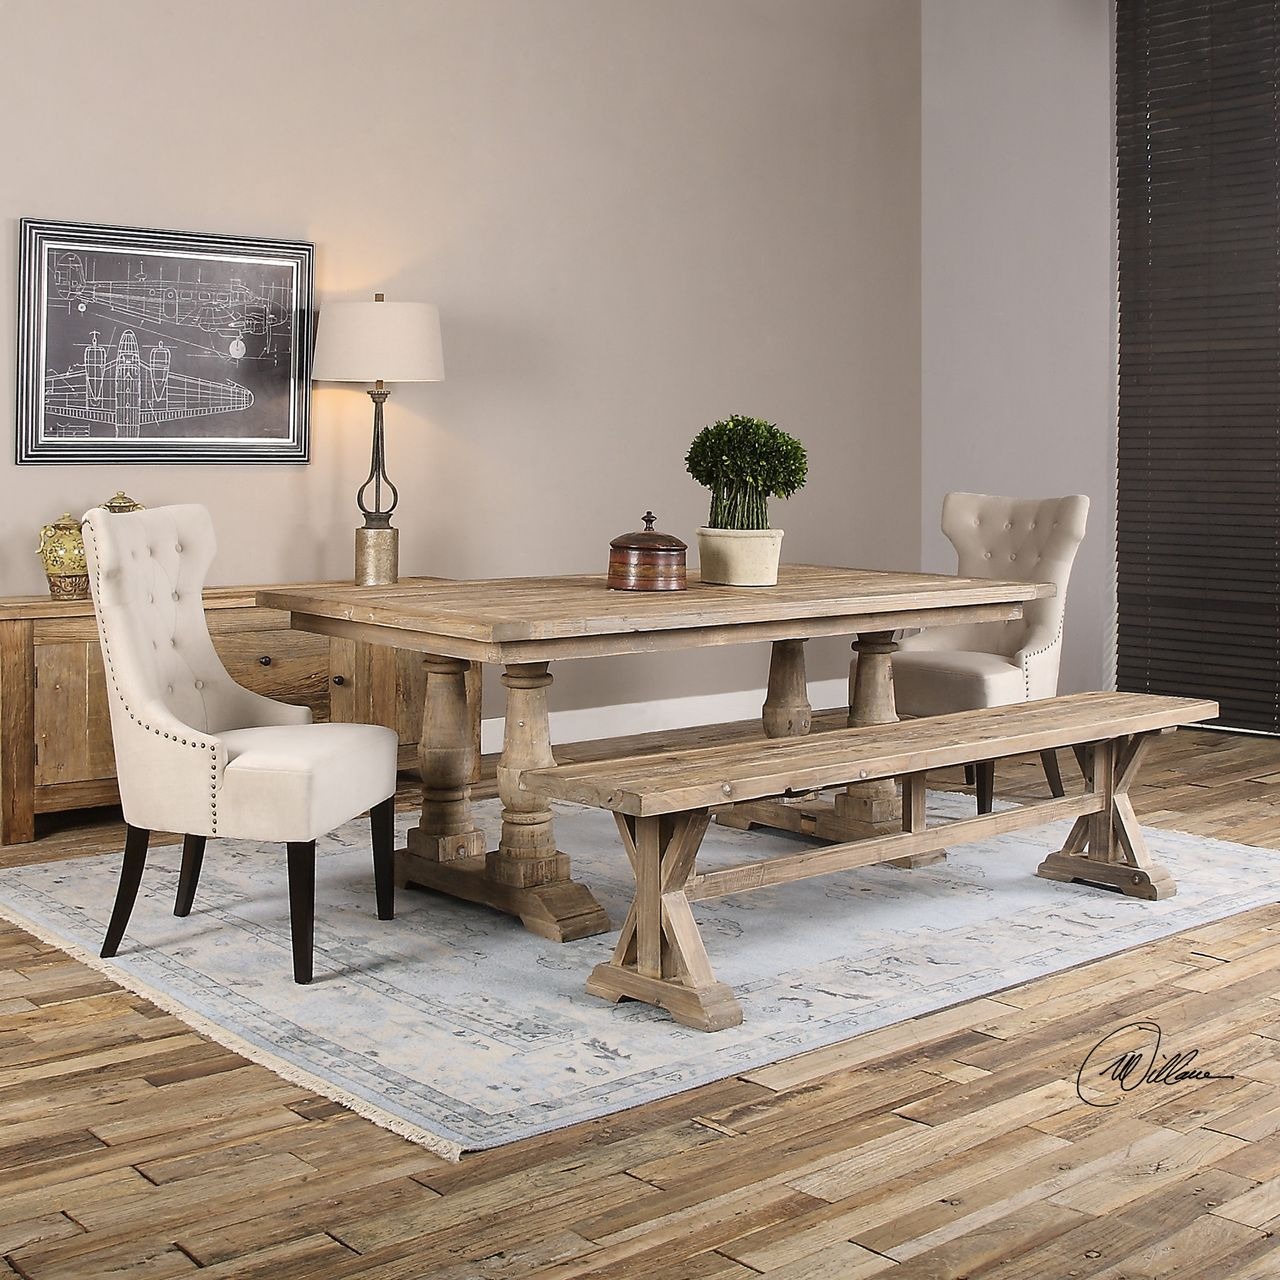 Salvaged Wood Double Trestle Dining Table Trestle Dining - Double trestle dining table